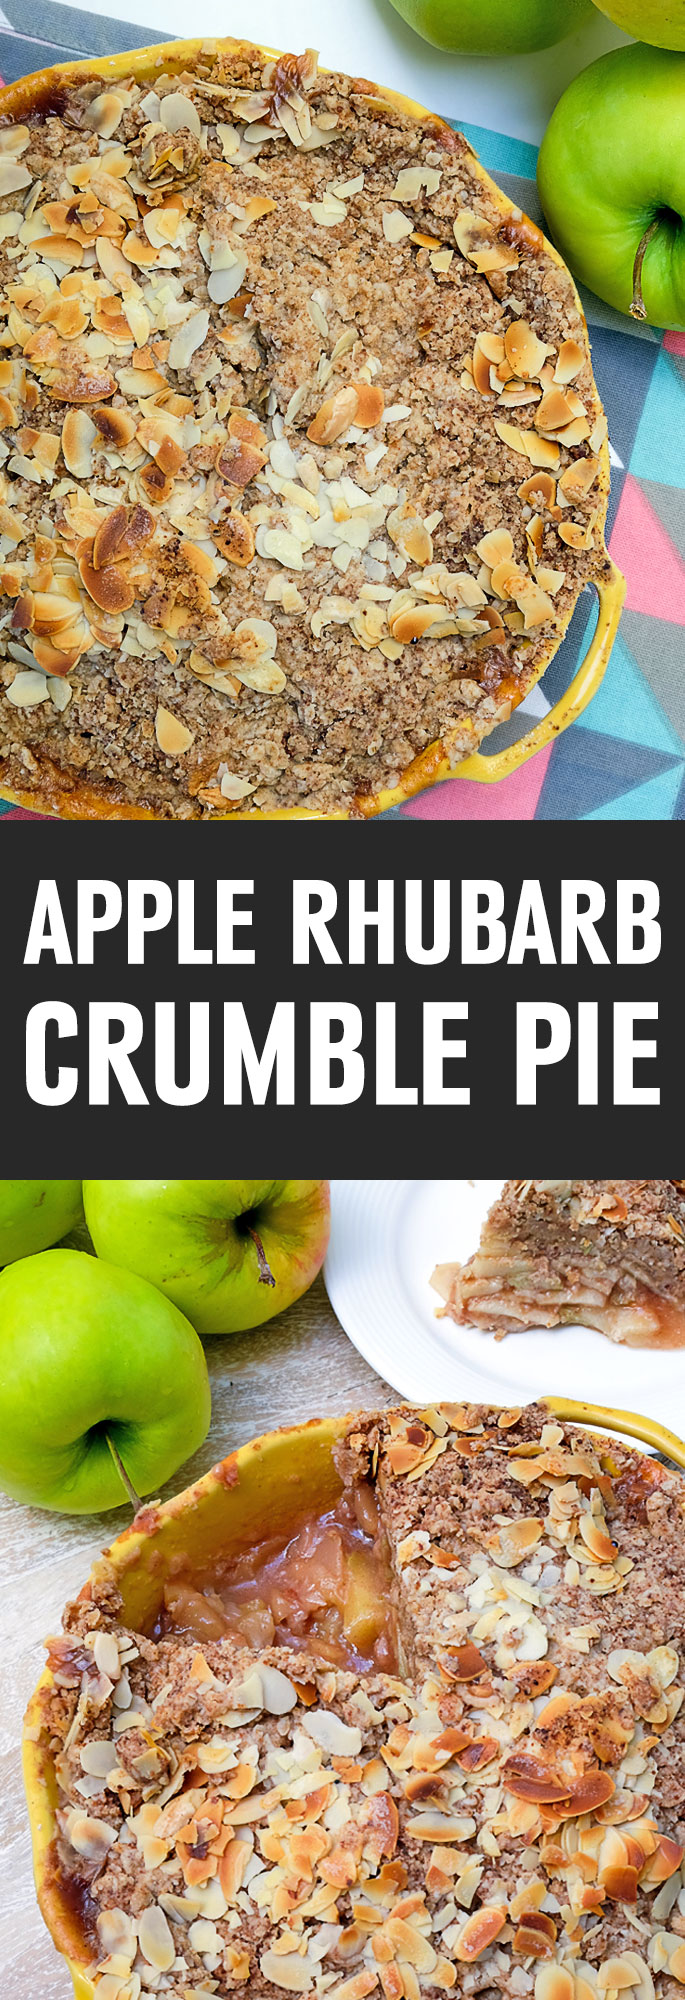 Apple rhubarb pie is the most popular fruit pie to make, and its filling, sweetness, and texture are different from other fruit fillings. This gluten free apple rhubarb crumble pie does not have a traditional pie crust, making it more diet friendly. A scrumptious pie that seems to stand out on it's ow. Shared via http://www.gluteninsight.com